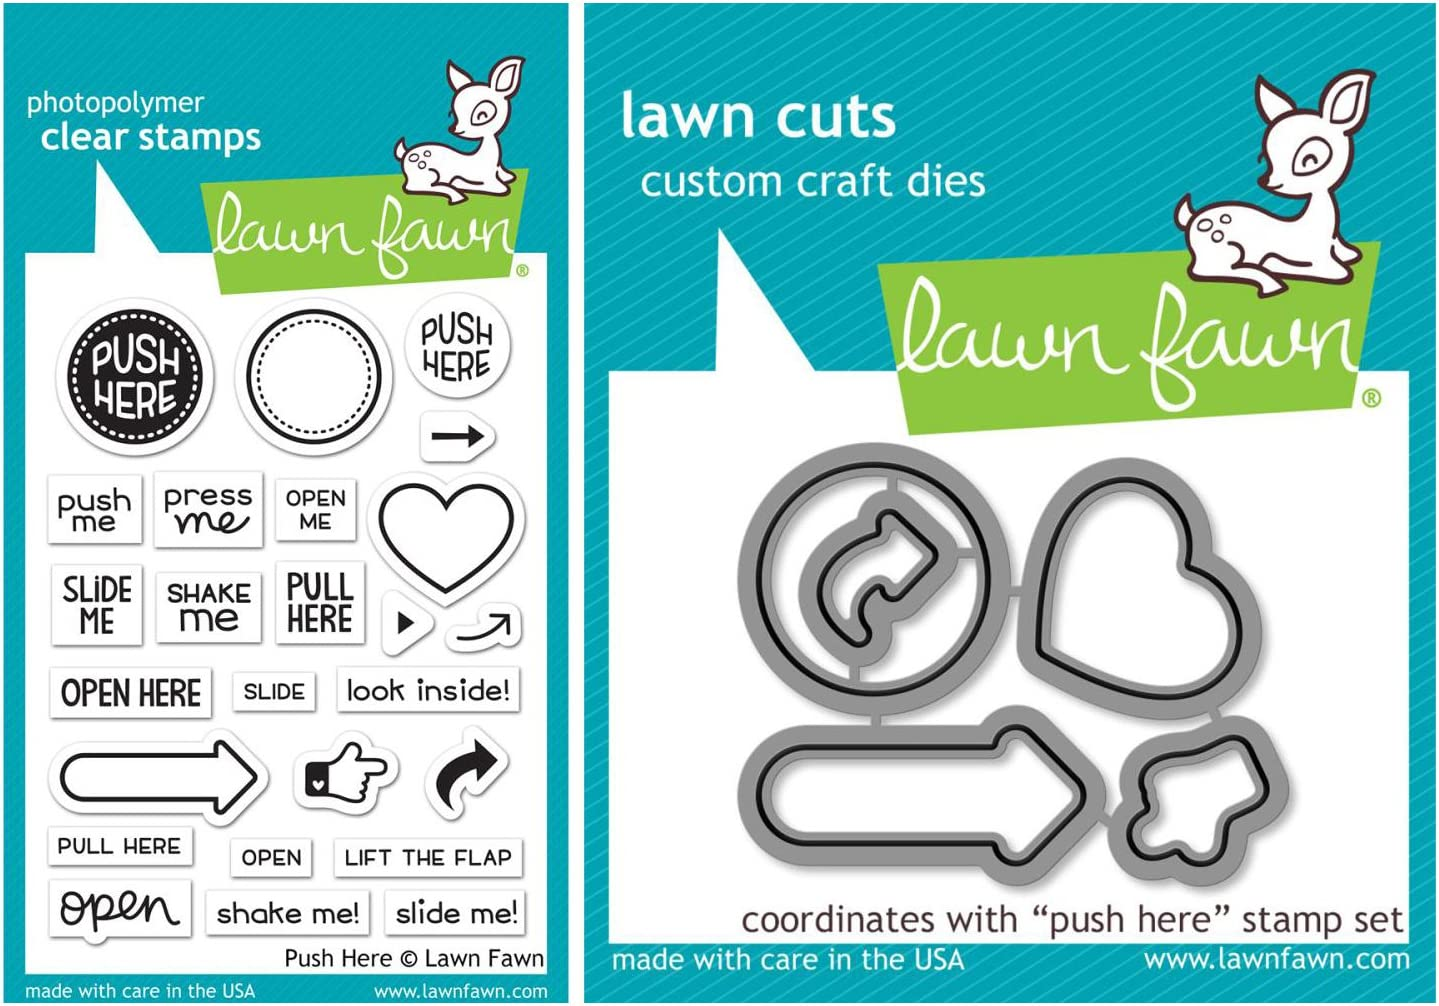 clear stamp Lawn Fawn push here